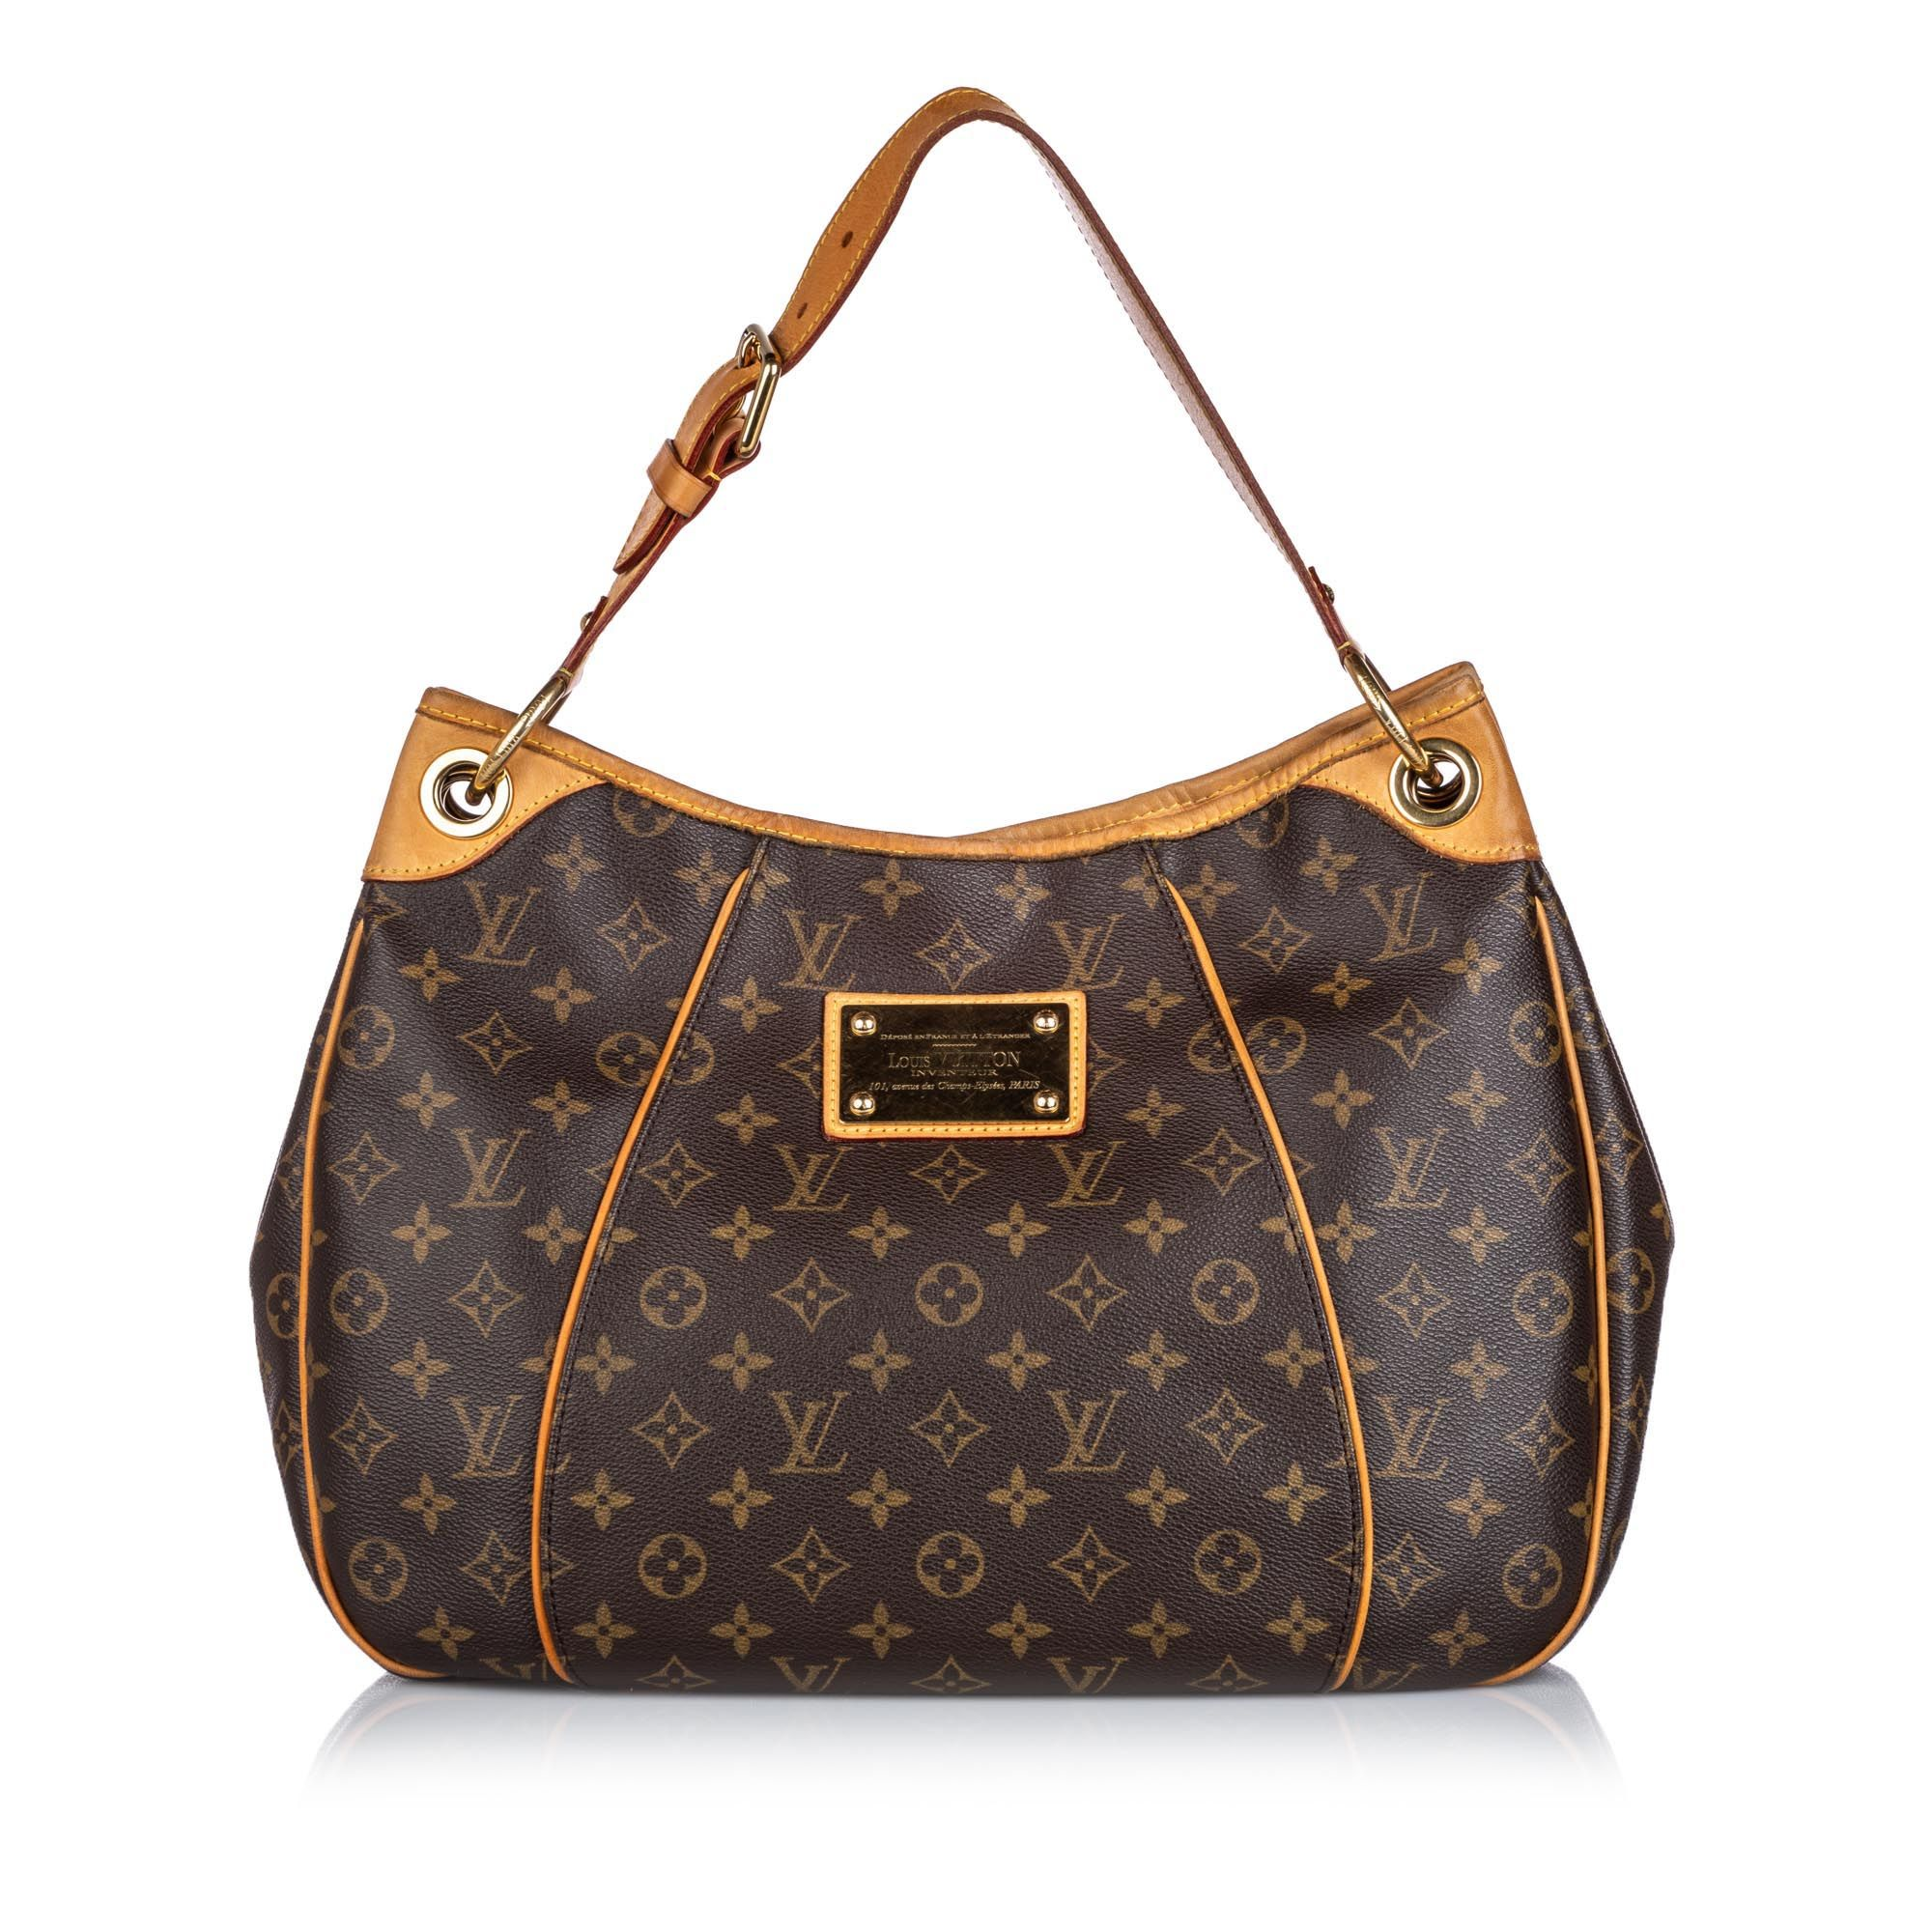 Vintage Louis Vuitton Monogram Galliera PM Brown